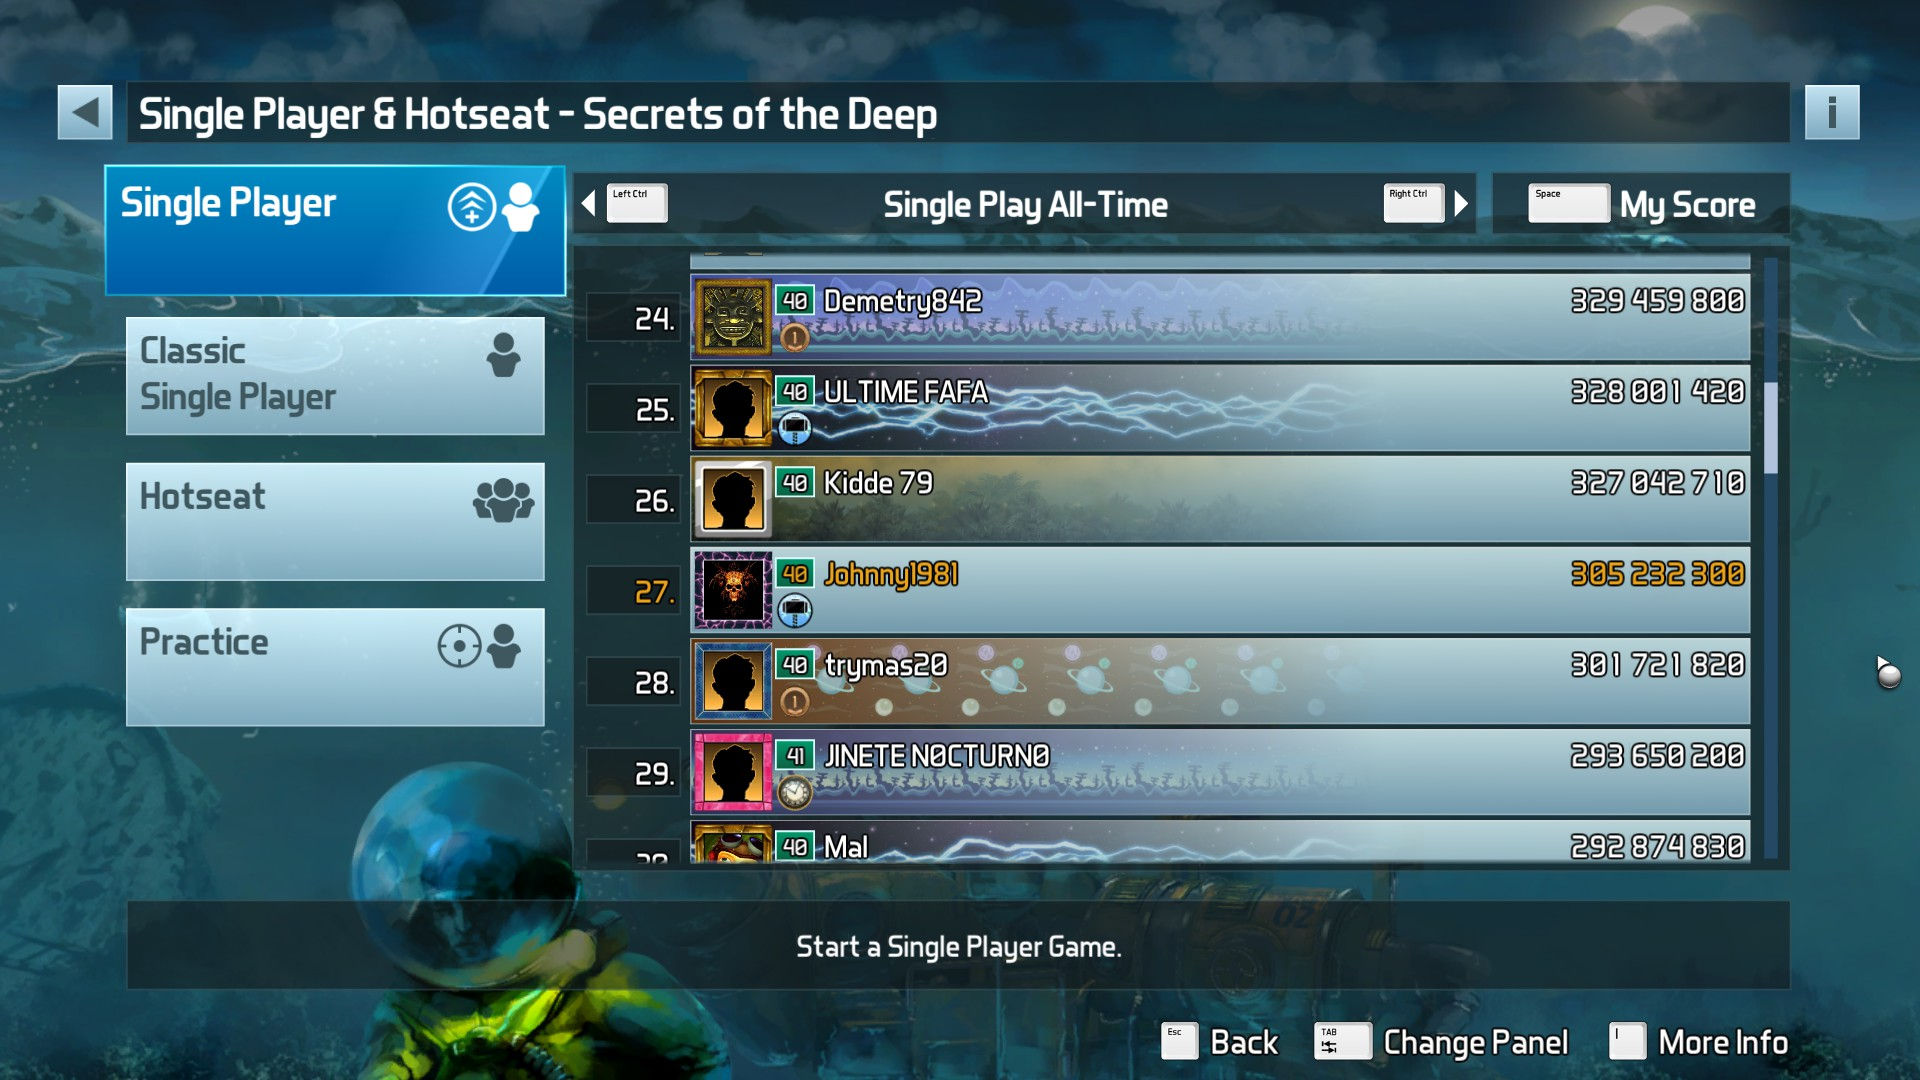 Johnny1981: Pinball FX3: Secrets of the Deep (PC) 305,232,300 points on 2018-04-11 01:07:56